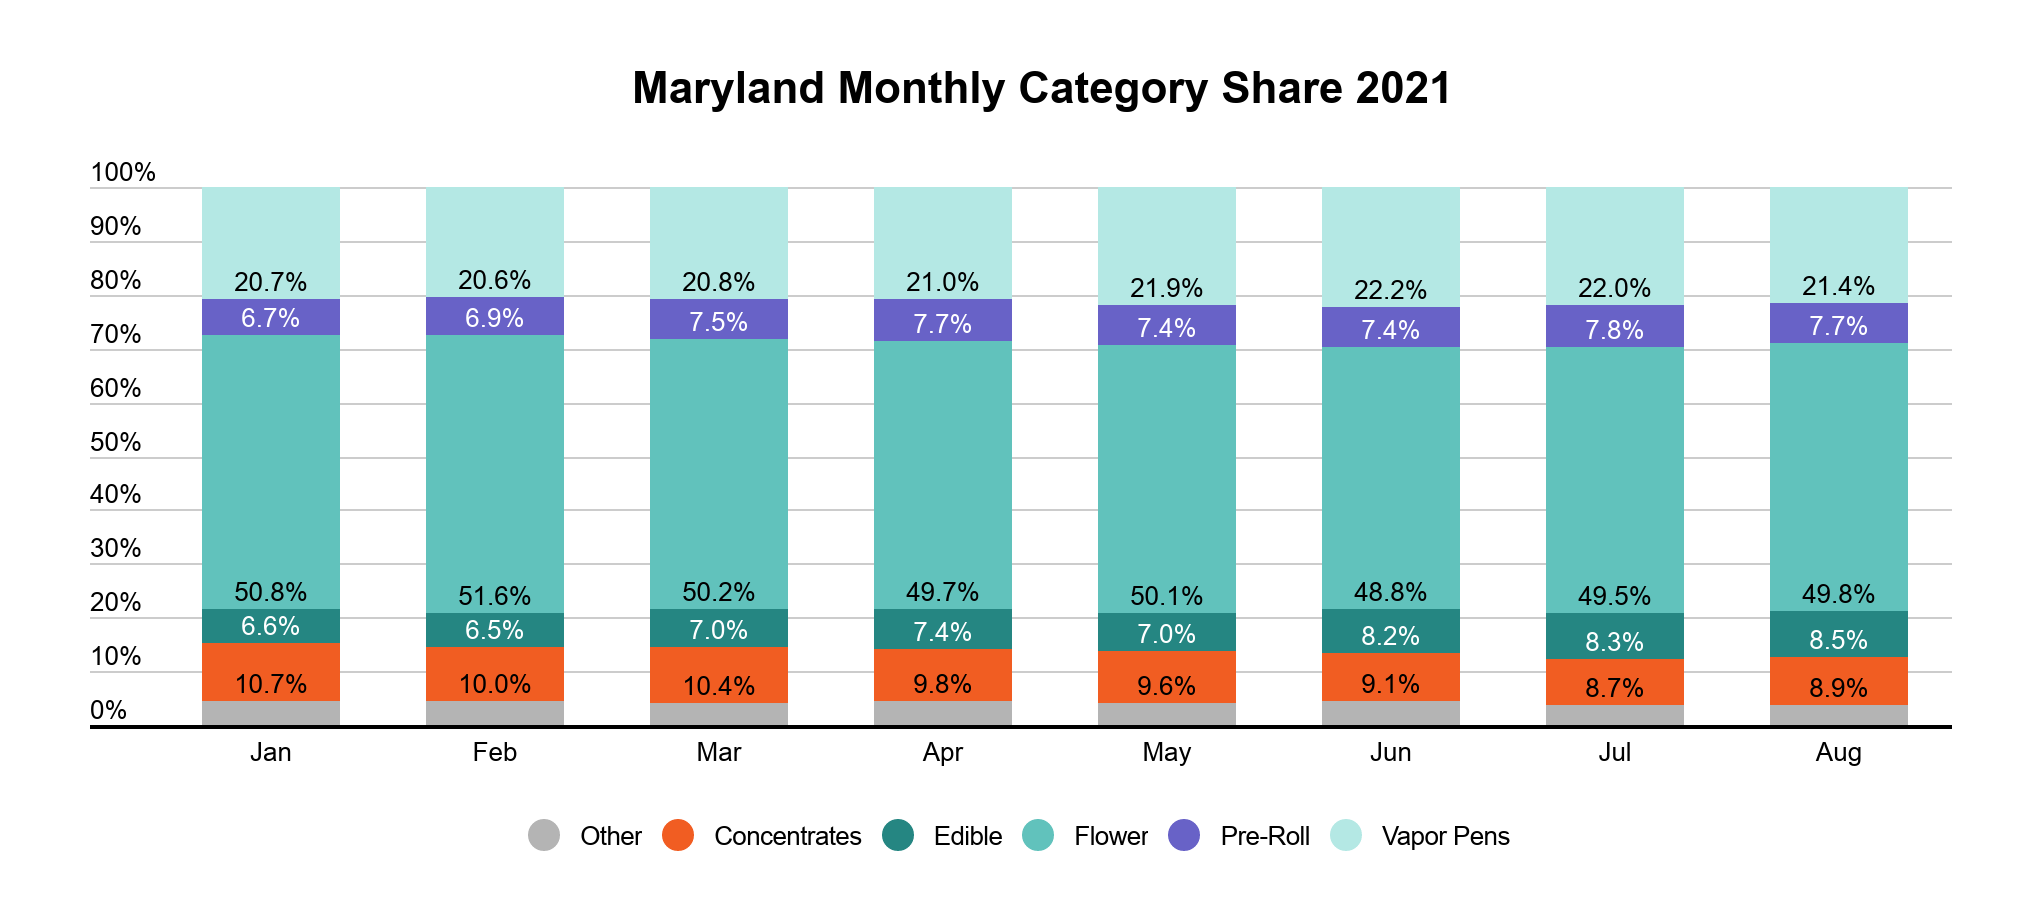 Maryland cannabis market report graph 5: Cannabis category market share in Maryland